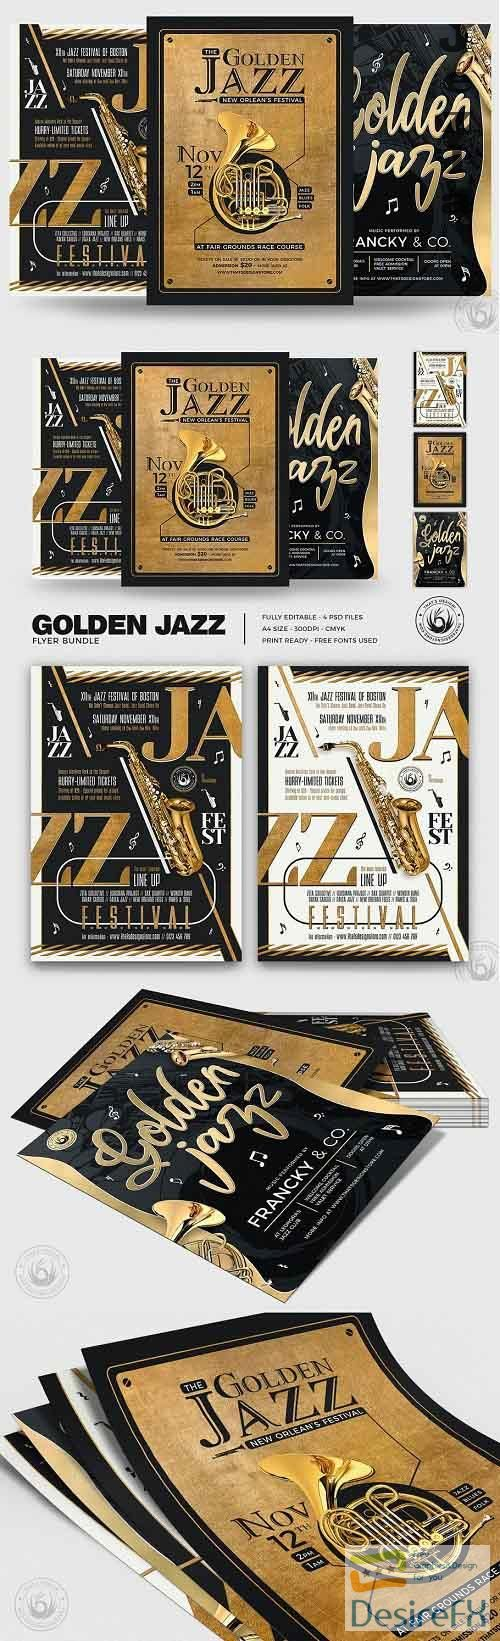 Golden Jazz Flyer Bundle - 4980753